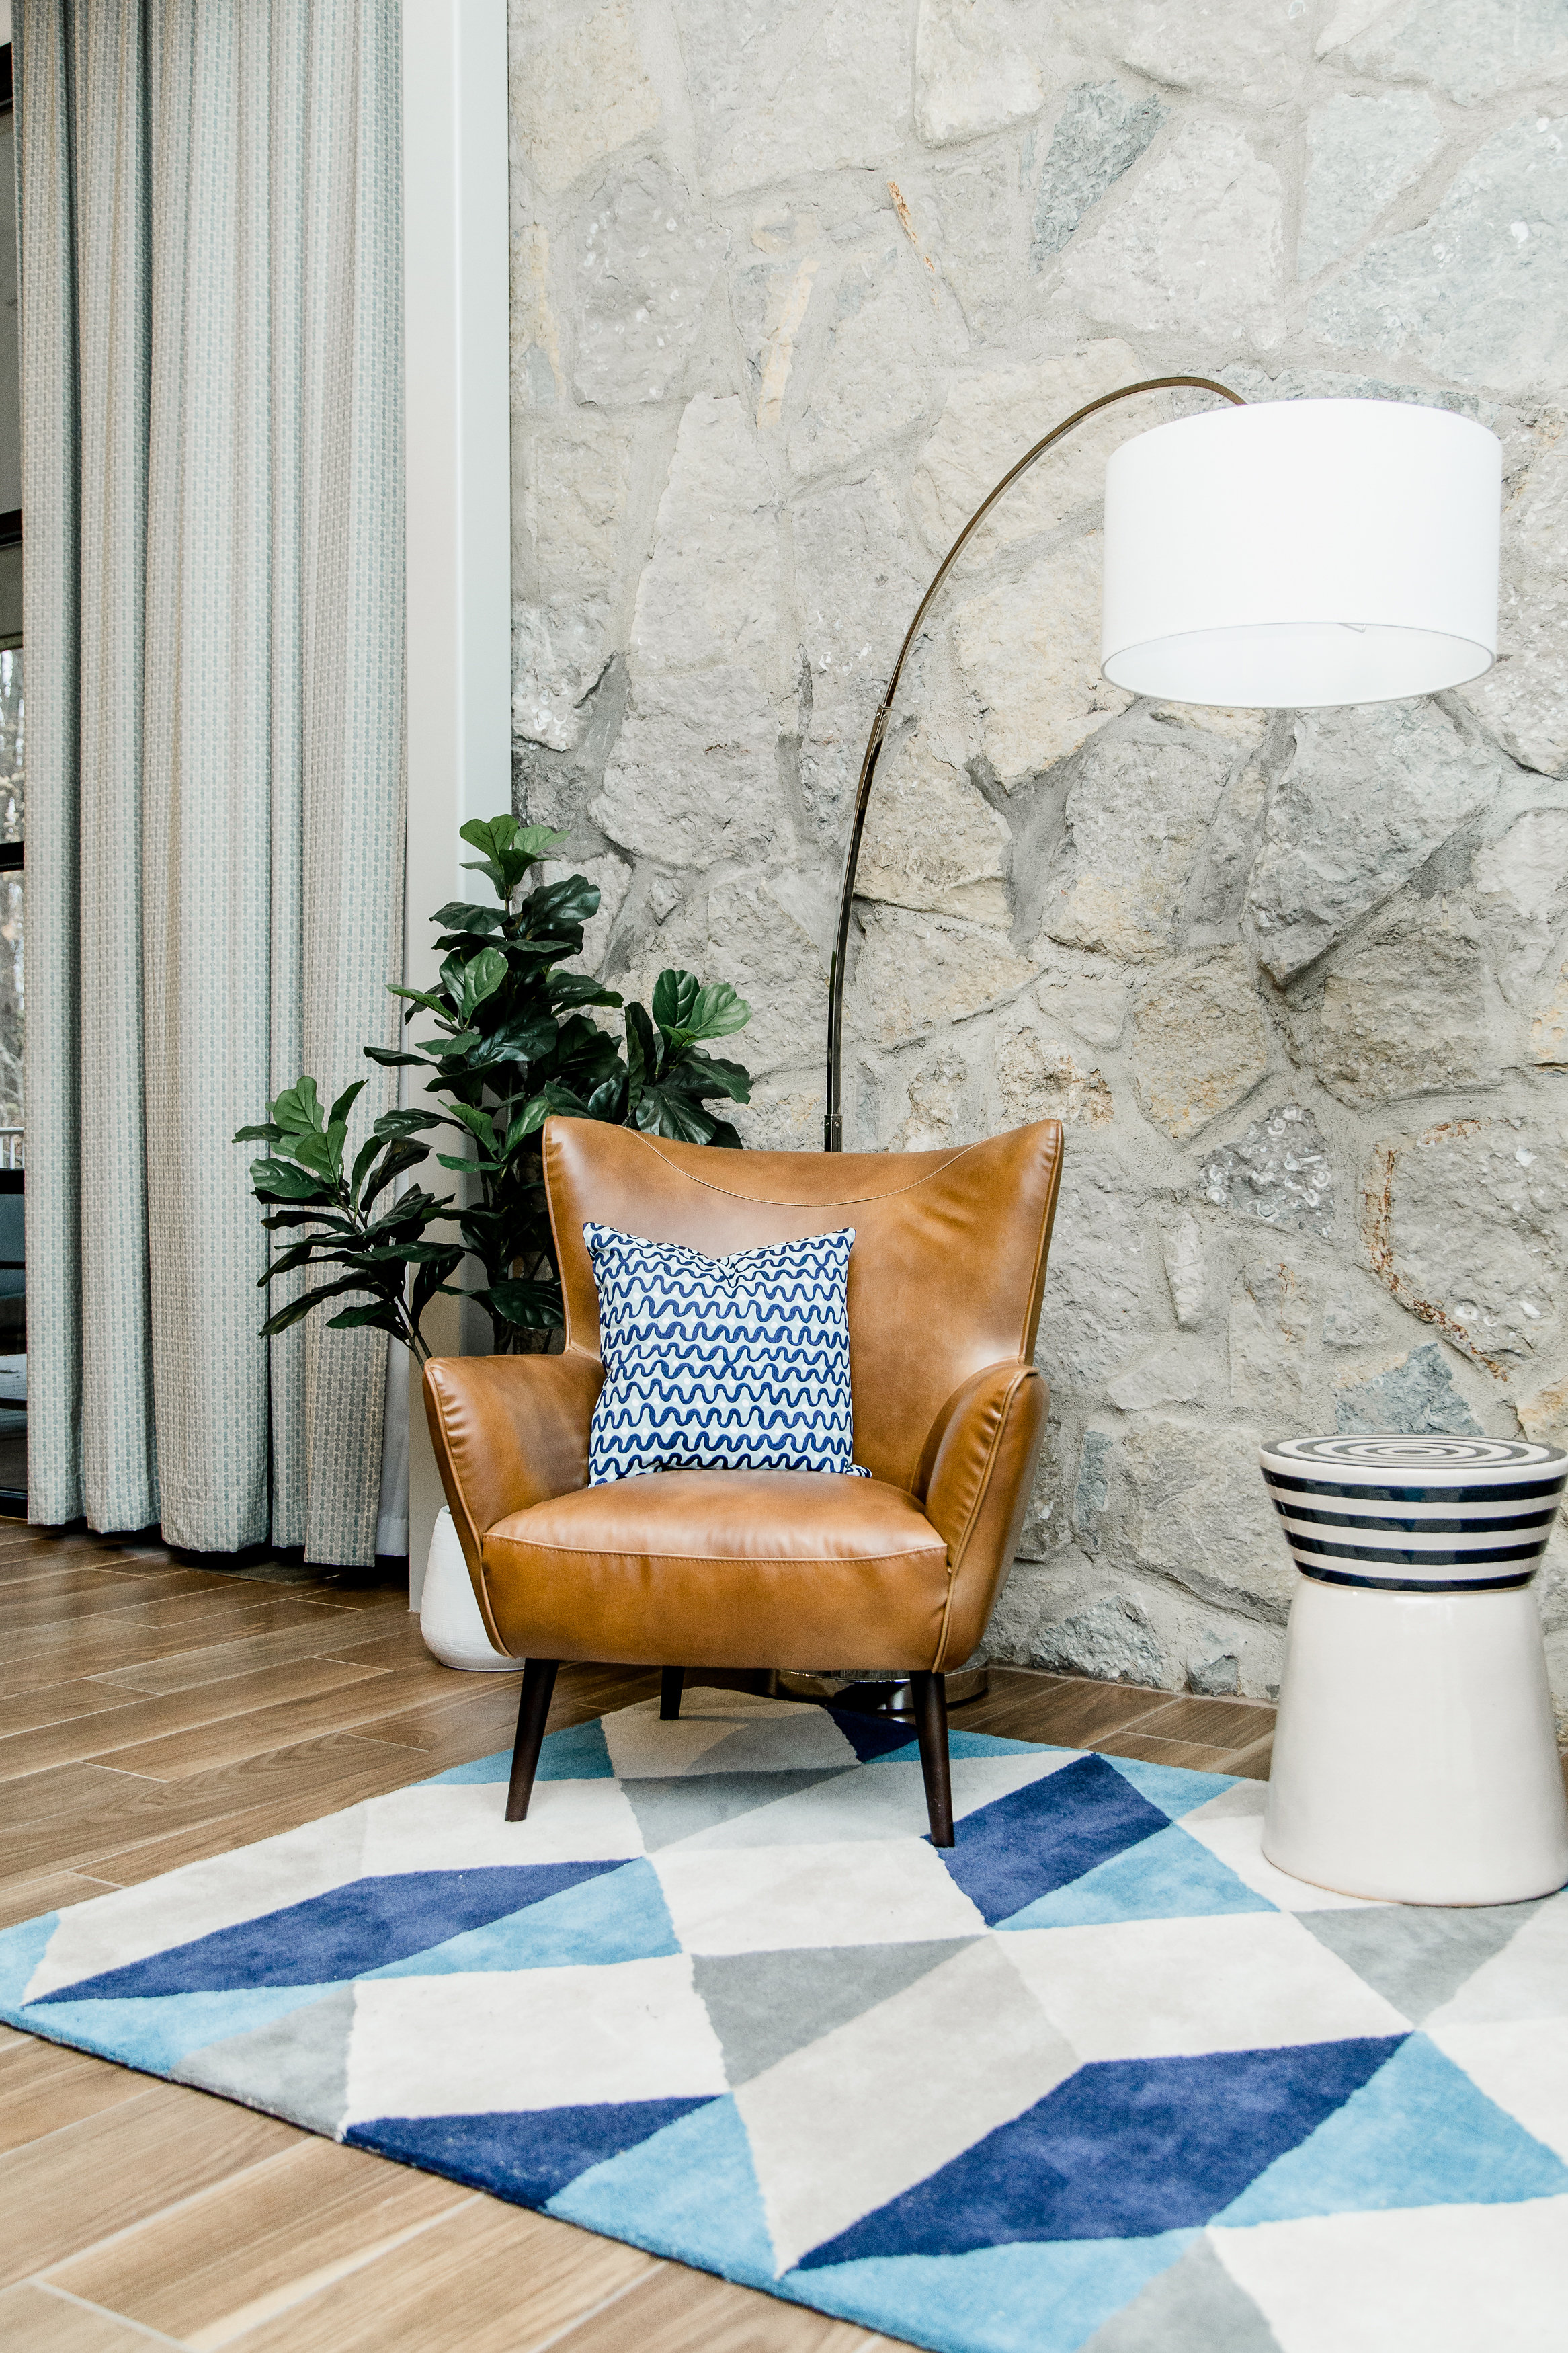 A note from the designer: Midcentury design can look too linear and stark, if you're not careful. So we used plants to warm up the space, a little. We were lucky that the client wanted to keep the original stone walls in the living room space, as well. That was a beautiful texture to play off of. We placed two beautiful leather chairs in front of the wall, in addition to a fiddle leaf fig plant. The chairs are a beautiful, supple leather which is in direct contrast with the rough, stone wall. And of course the fiddle leaf adds visual interest and dynamic movement.